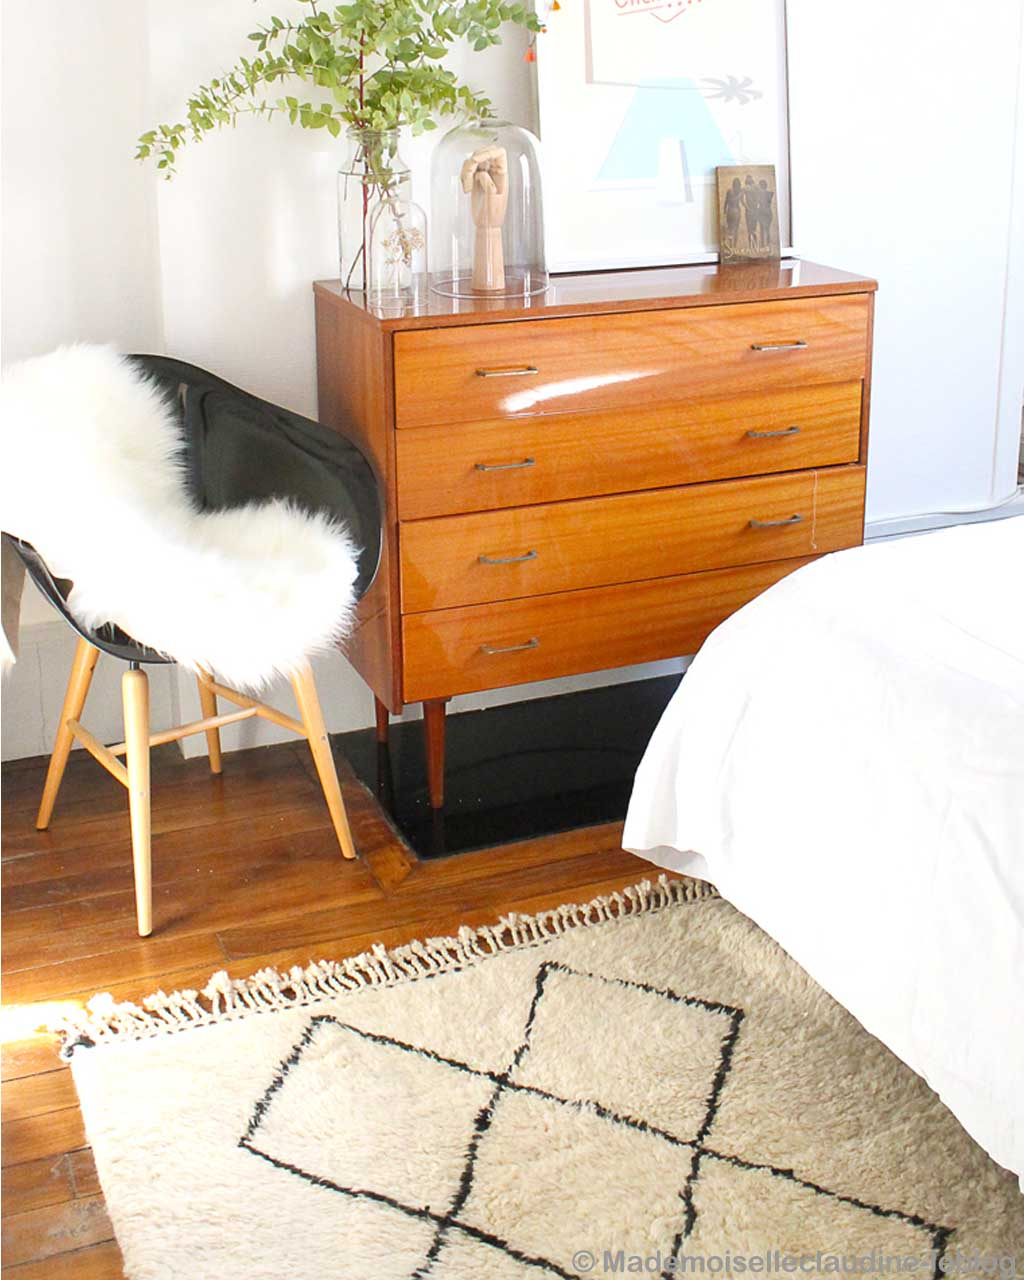 wooden chest and chair modern striped rug